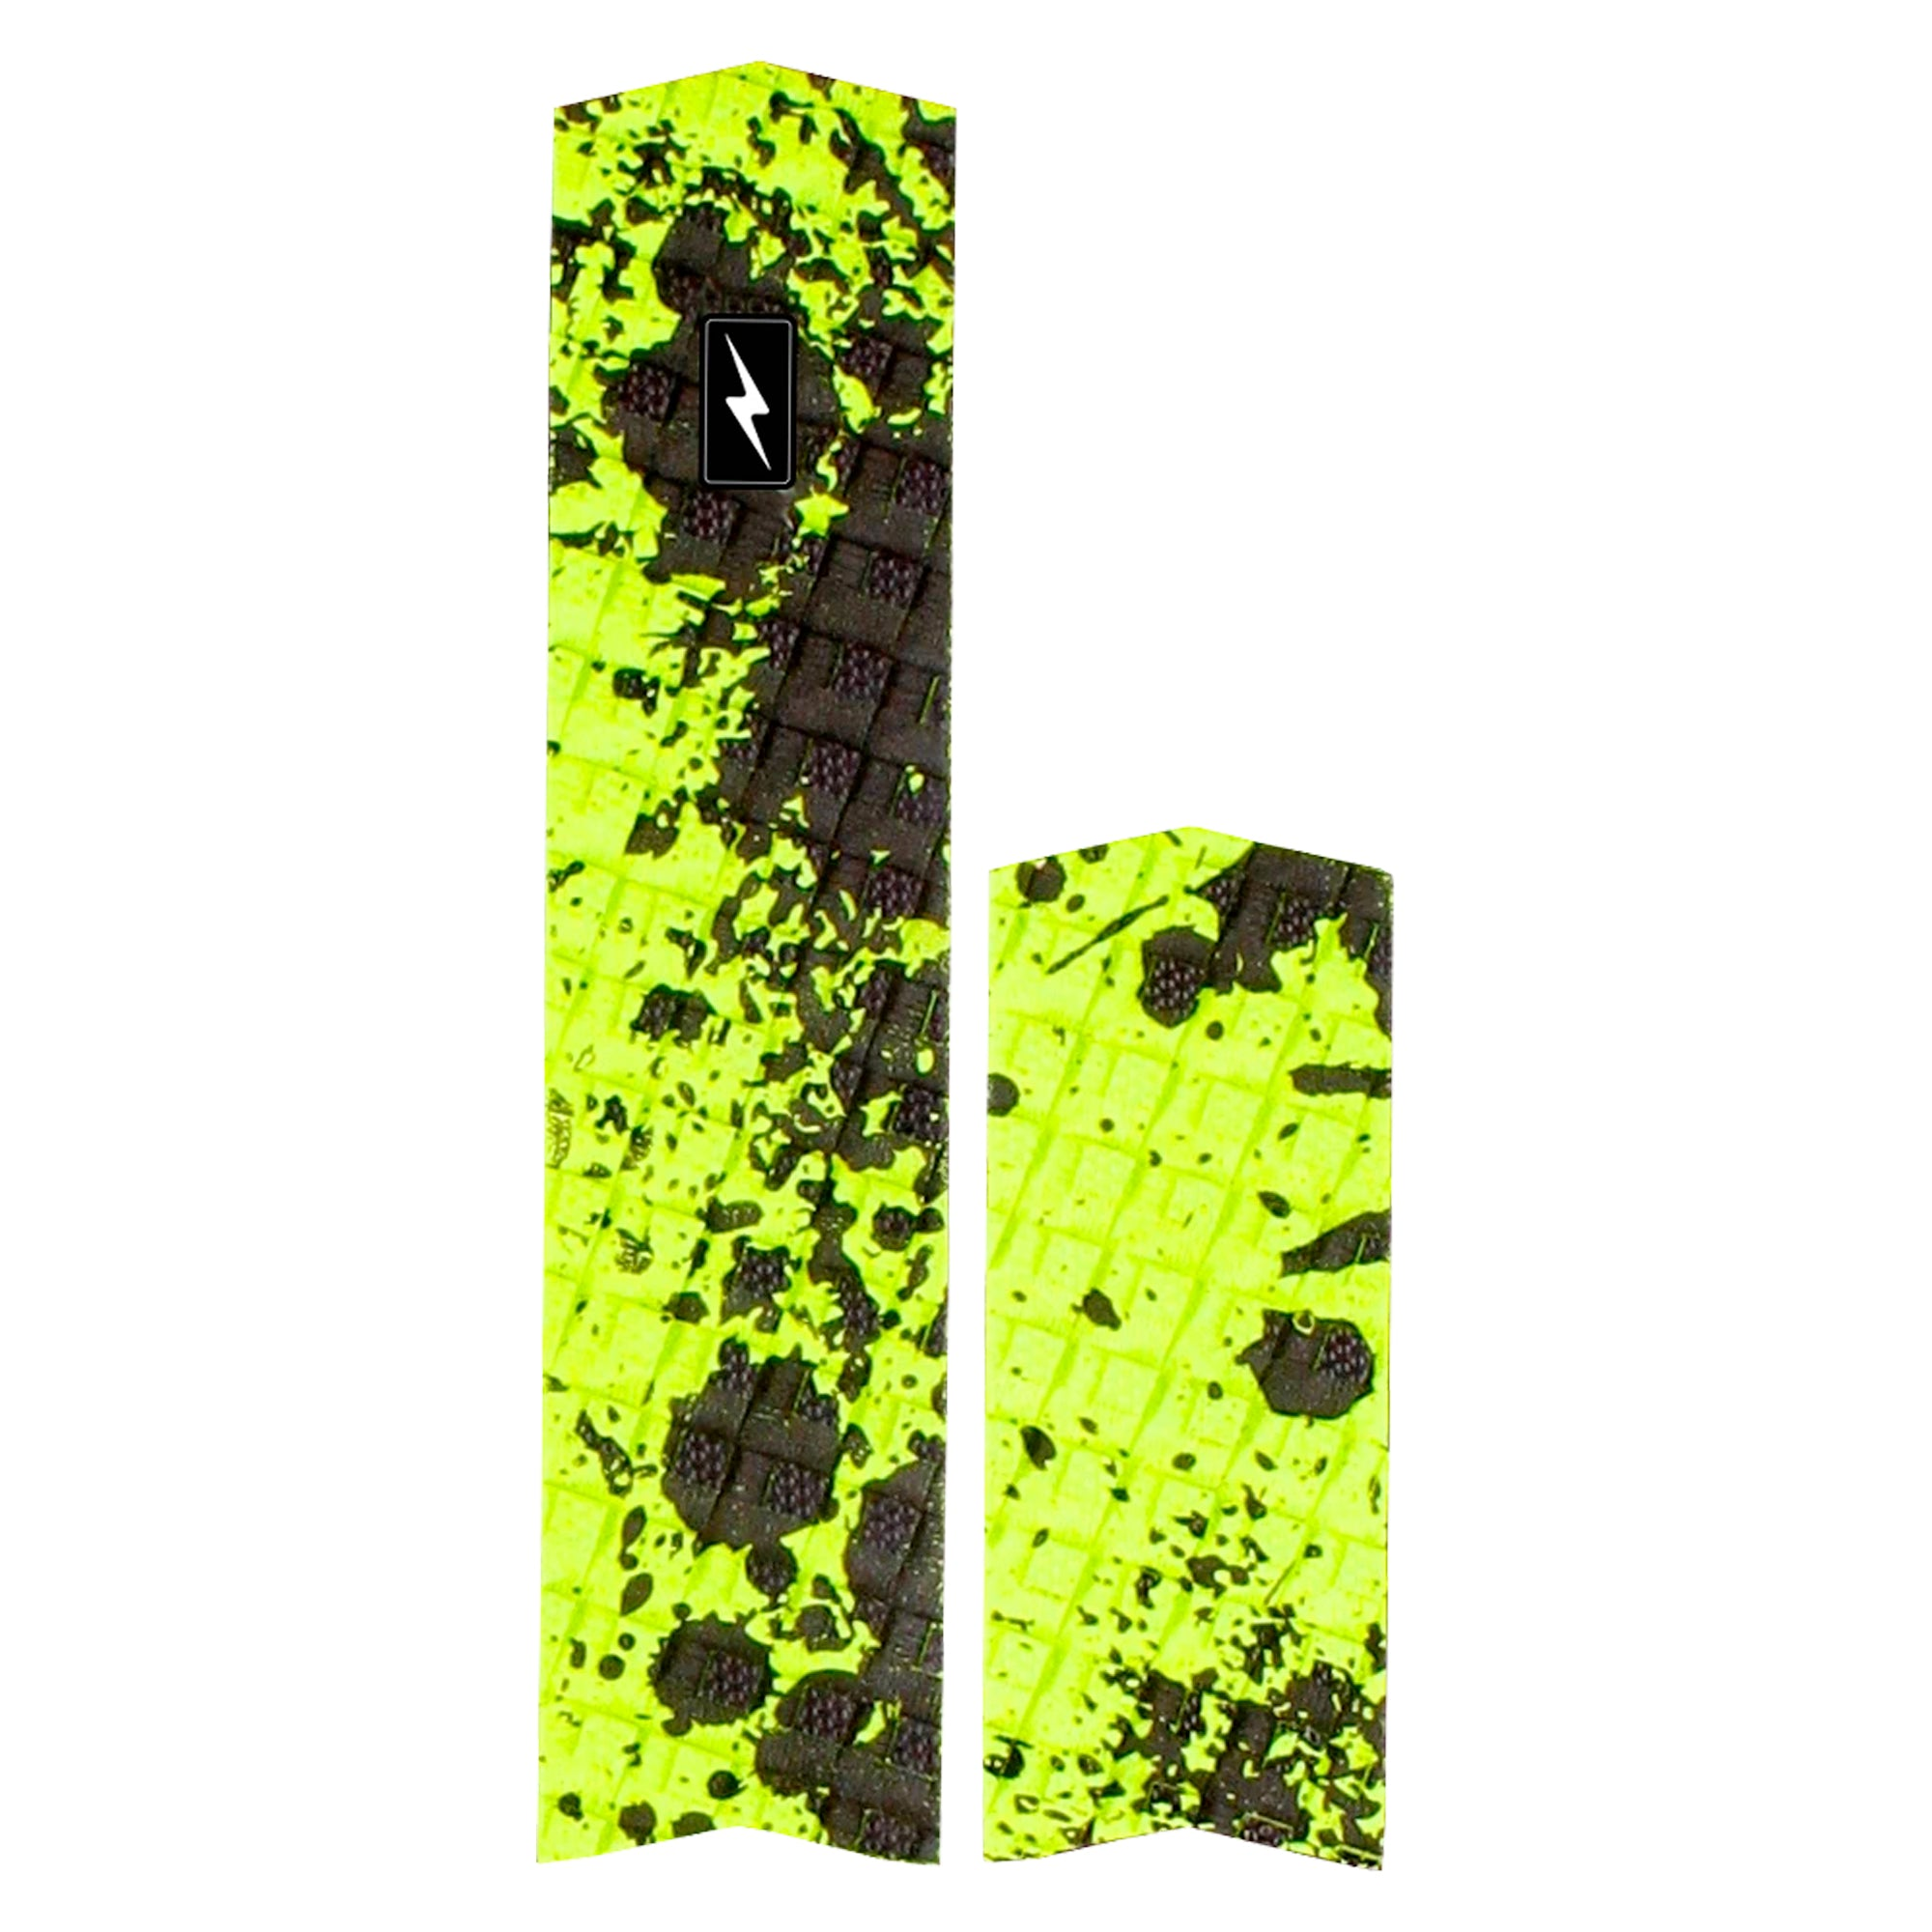 Zap Spark Arch Bar Skimboard Traction Pad - Green